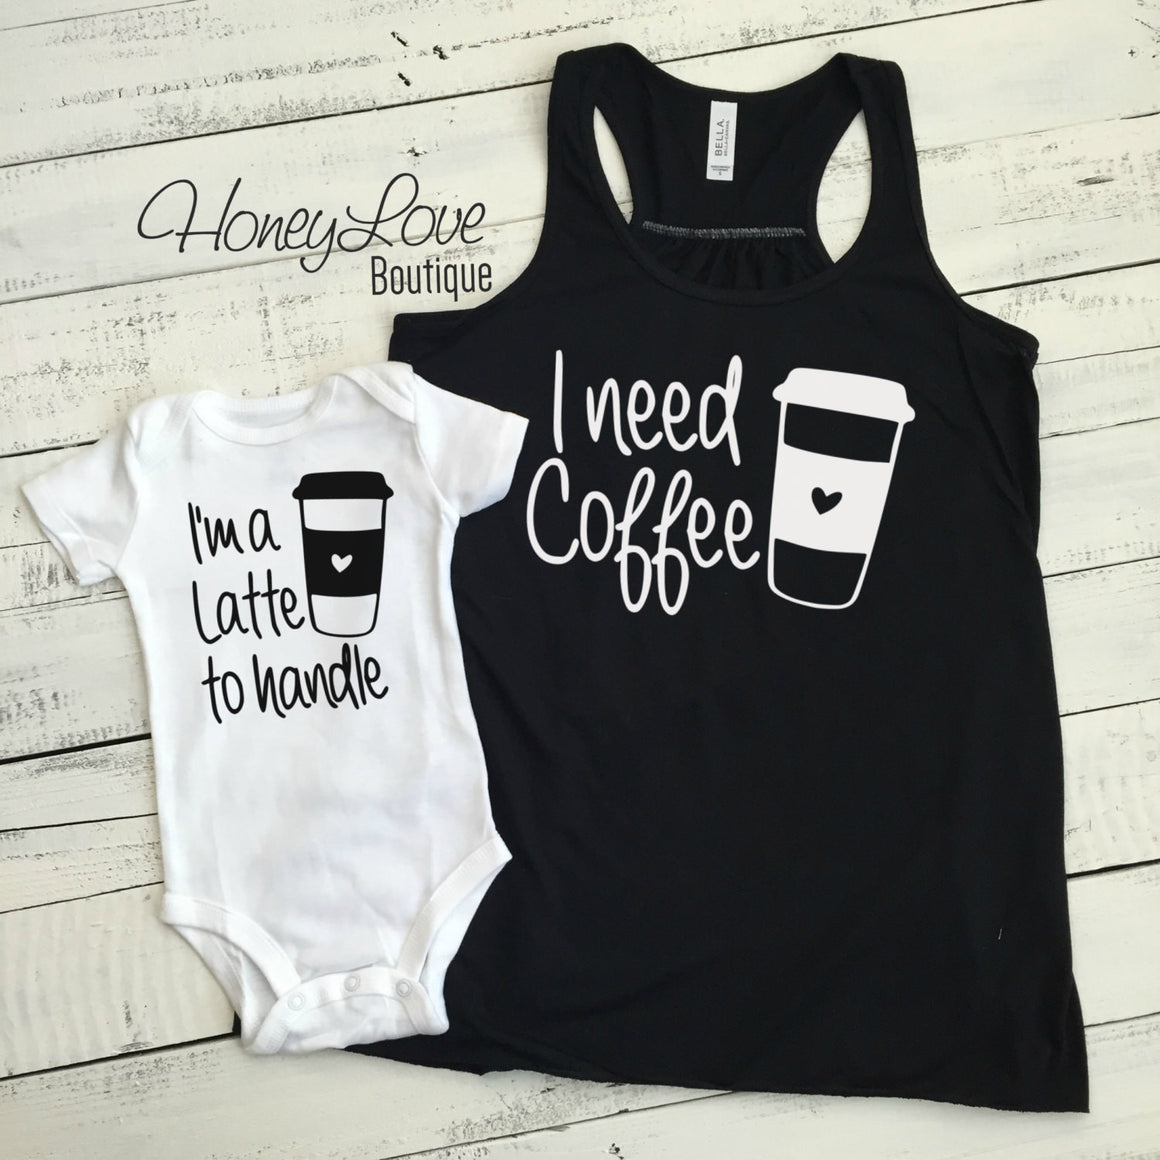 I need Coffee tank and I'm a Latte to handle bodysuit SET - HoneyLoveBoutique